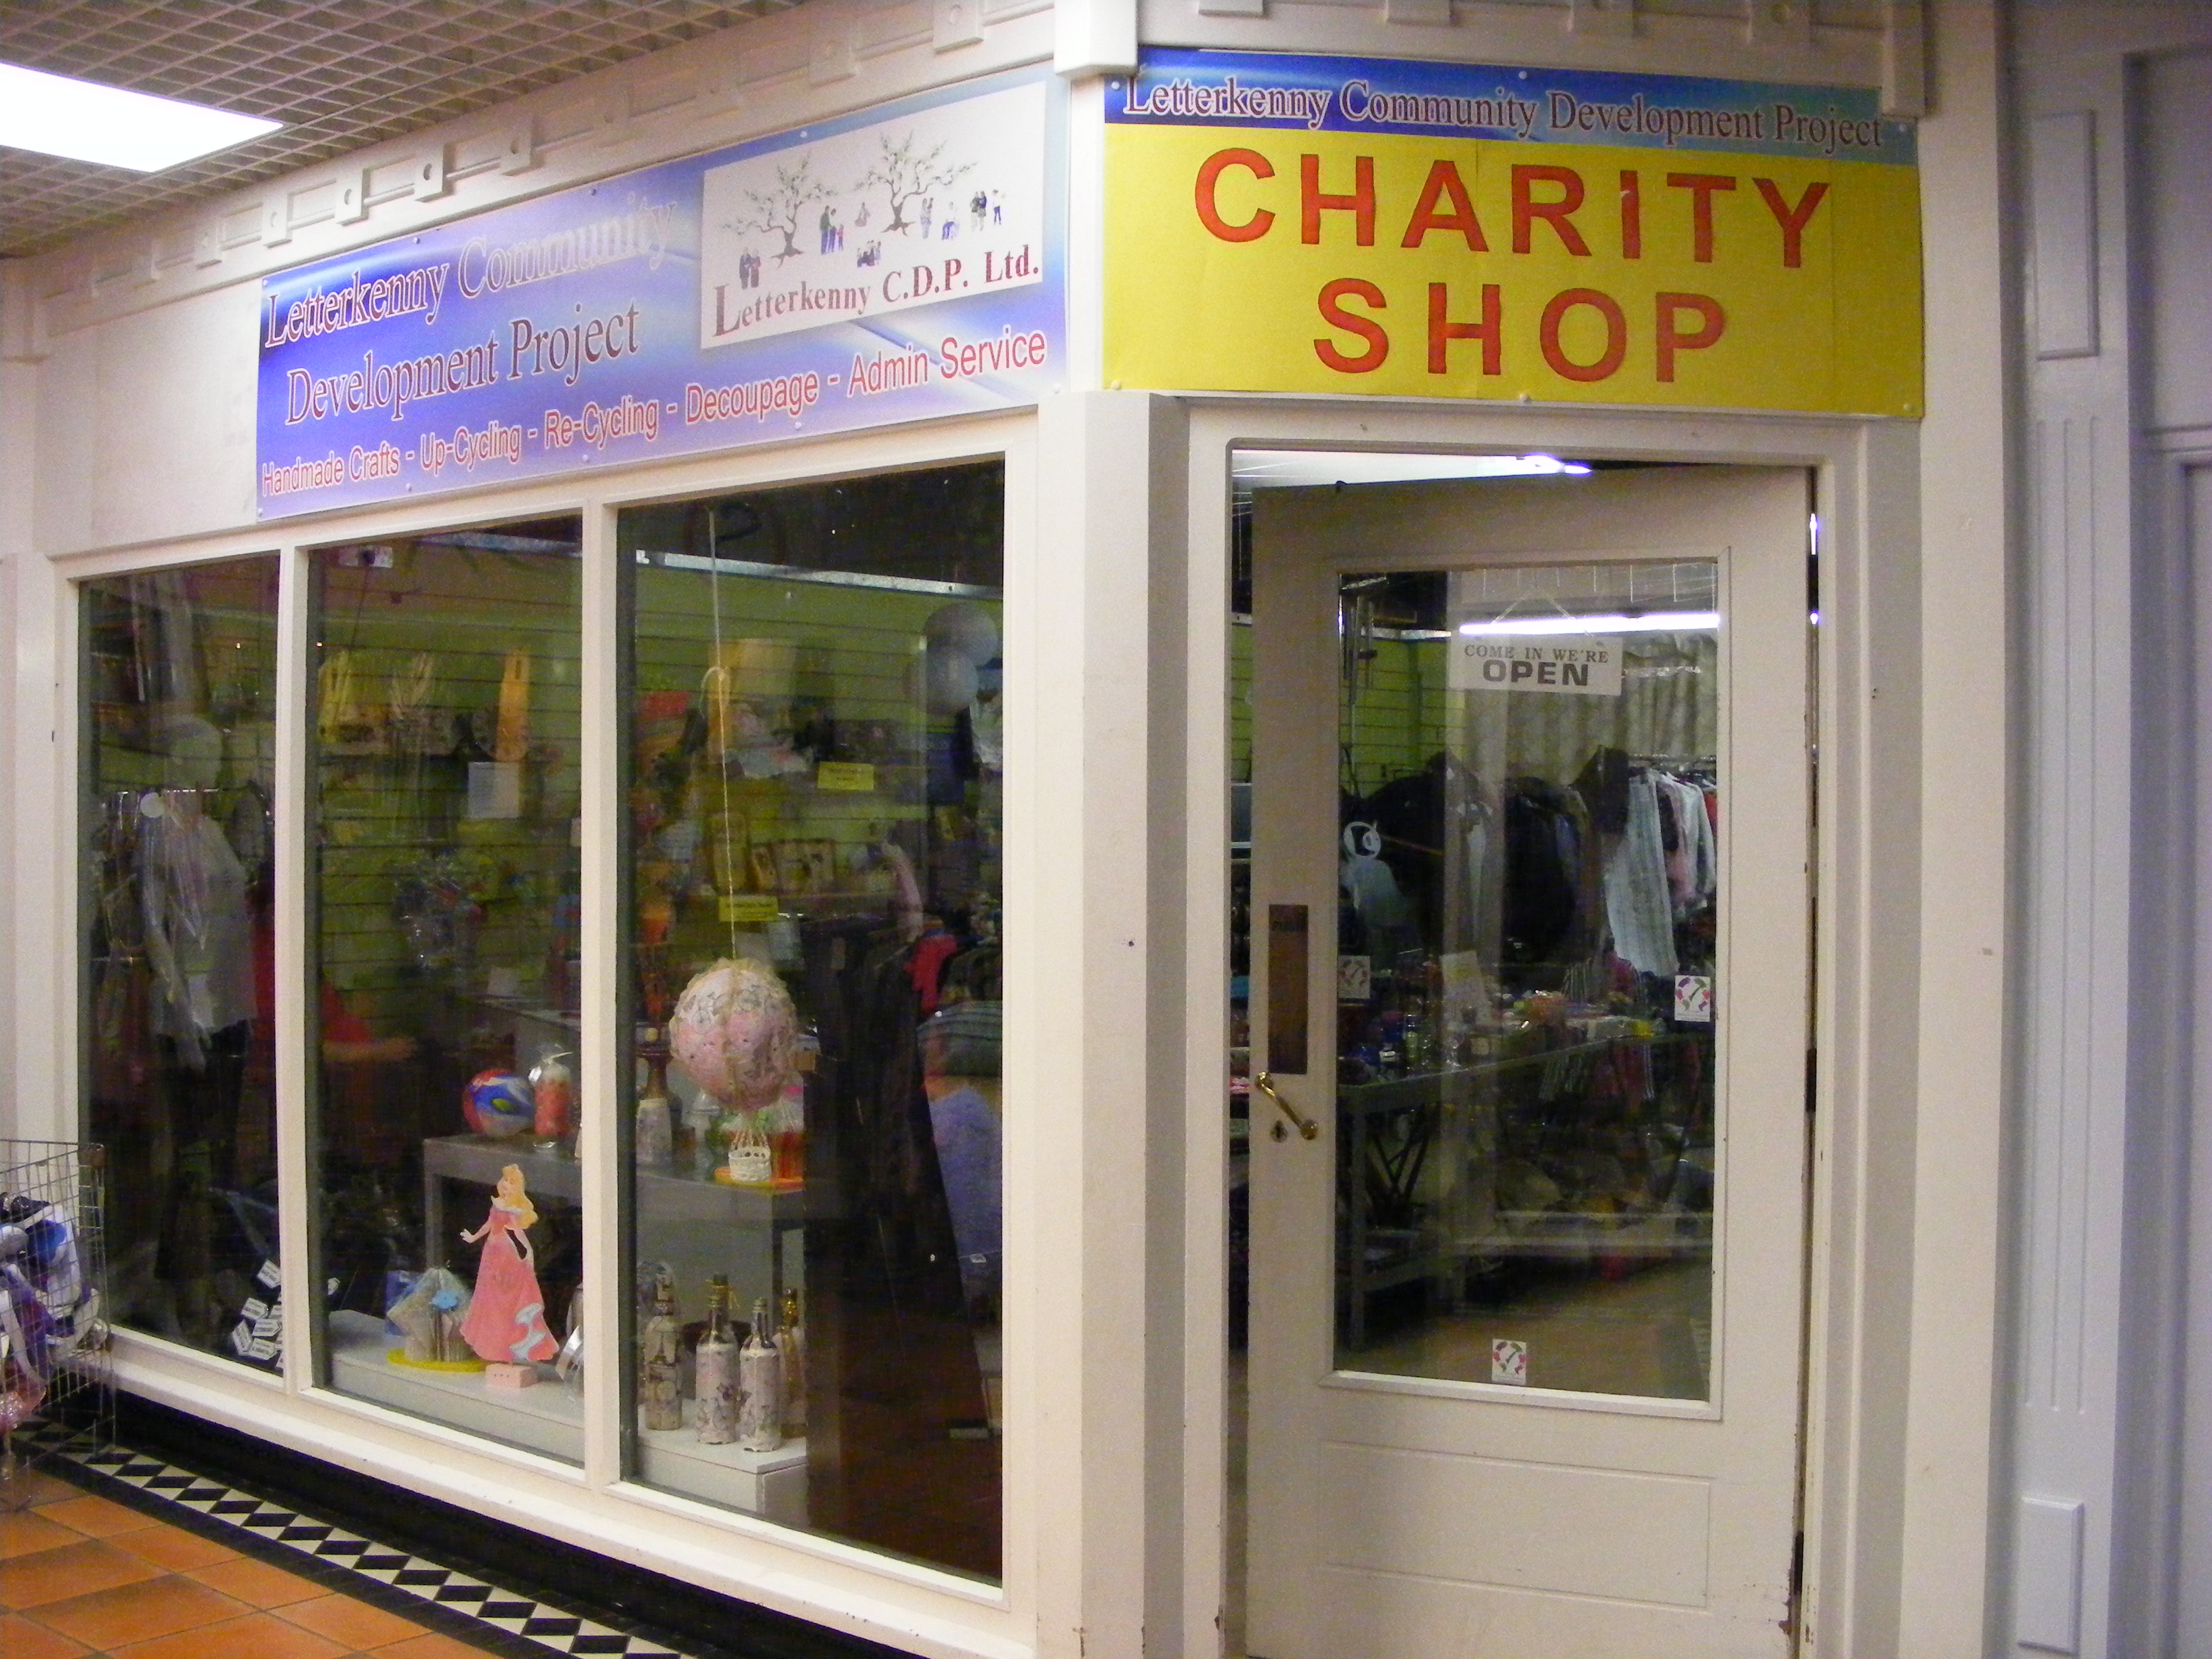 Cdp Charity Shop Letterkenny Community Development Project Clg